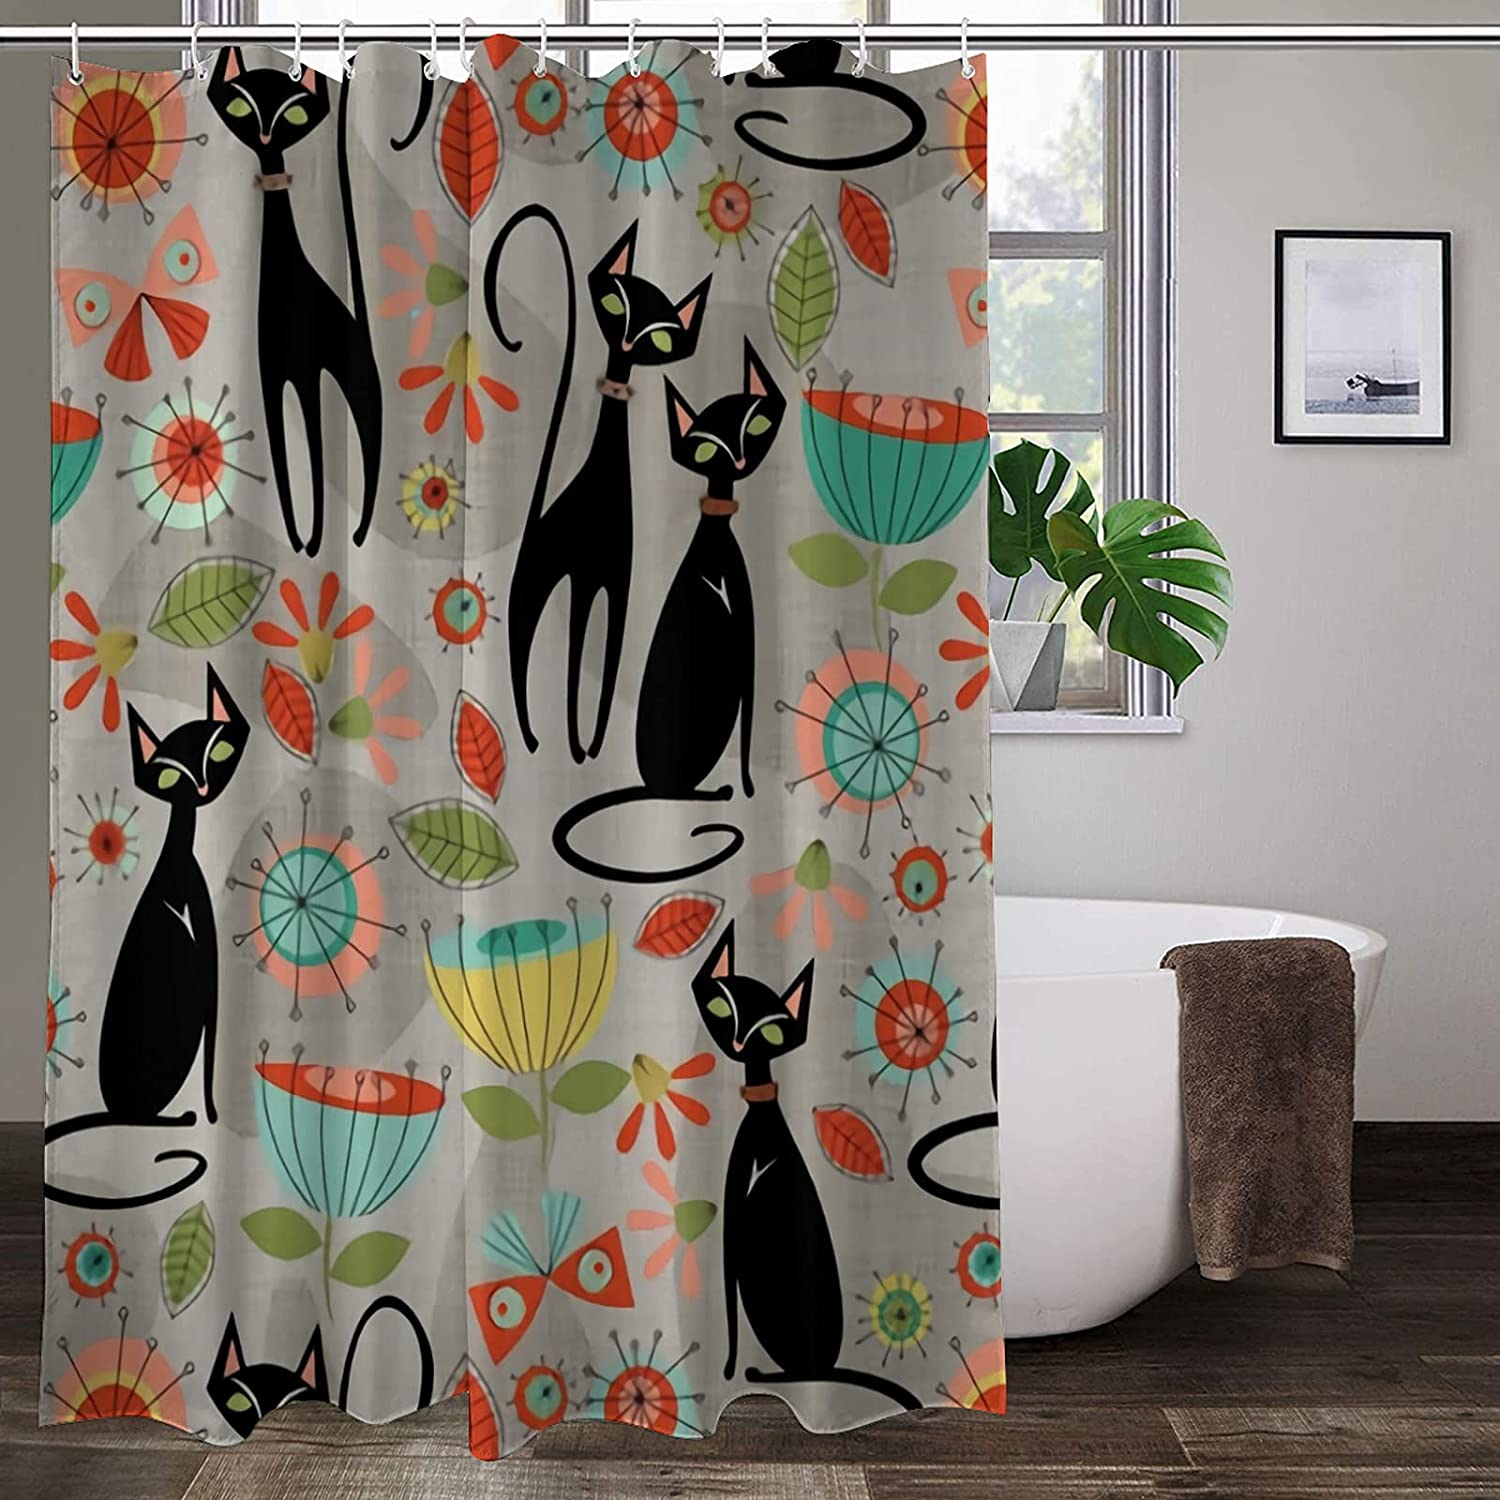 Shower Curtain Set with 12 Hooks Max 48% OFF Century mid Blossoms Cats Department store Patt